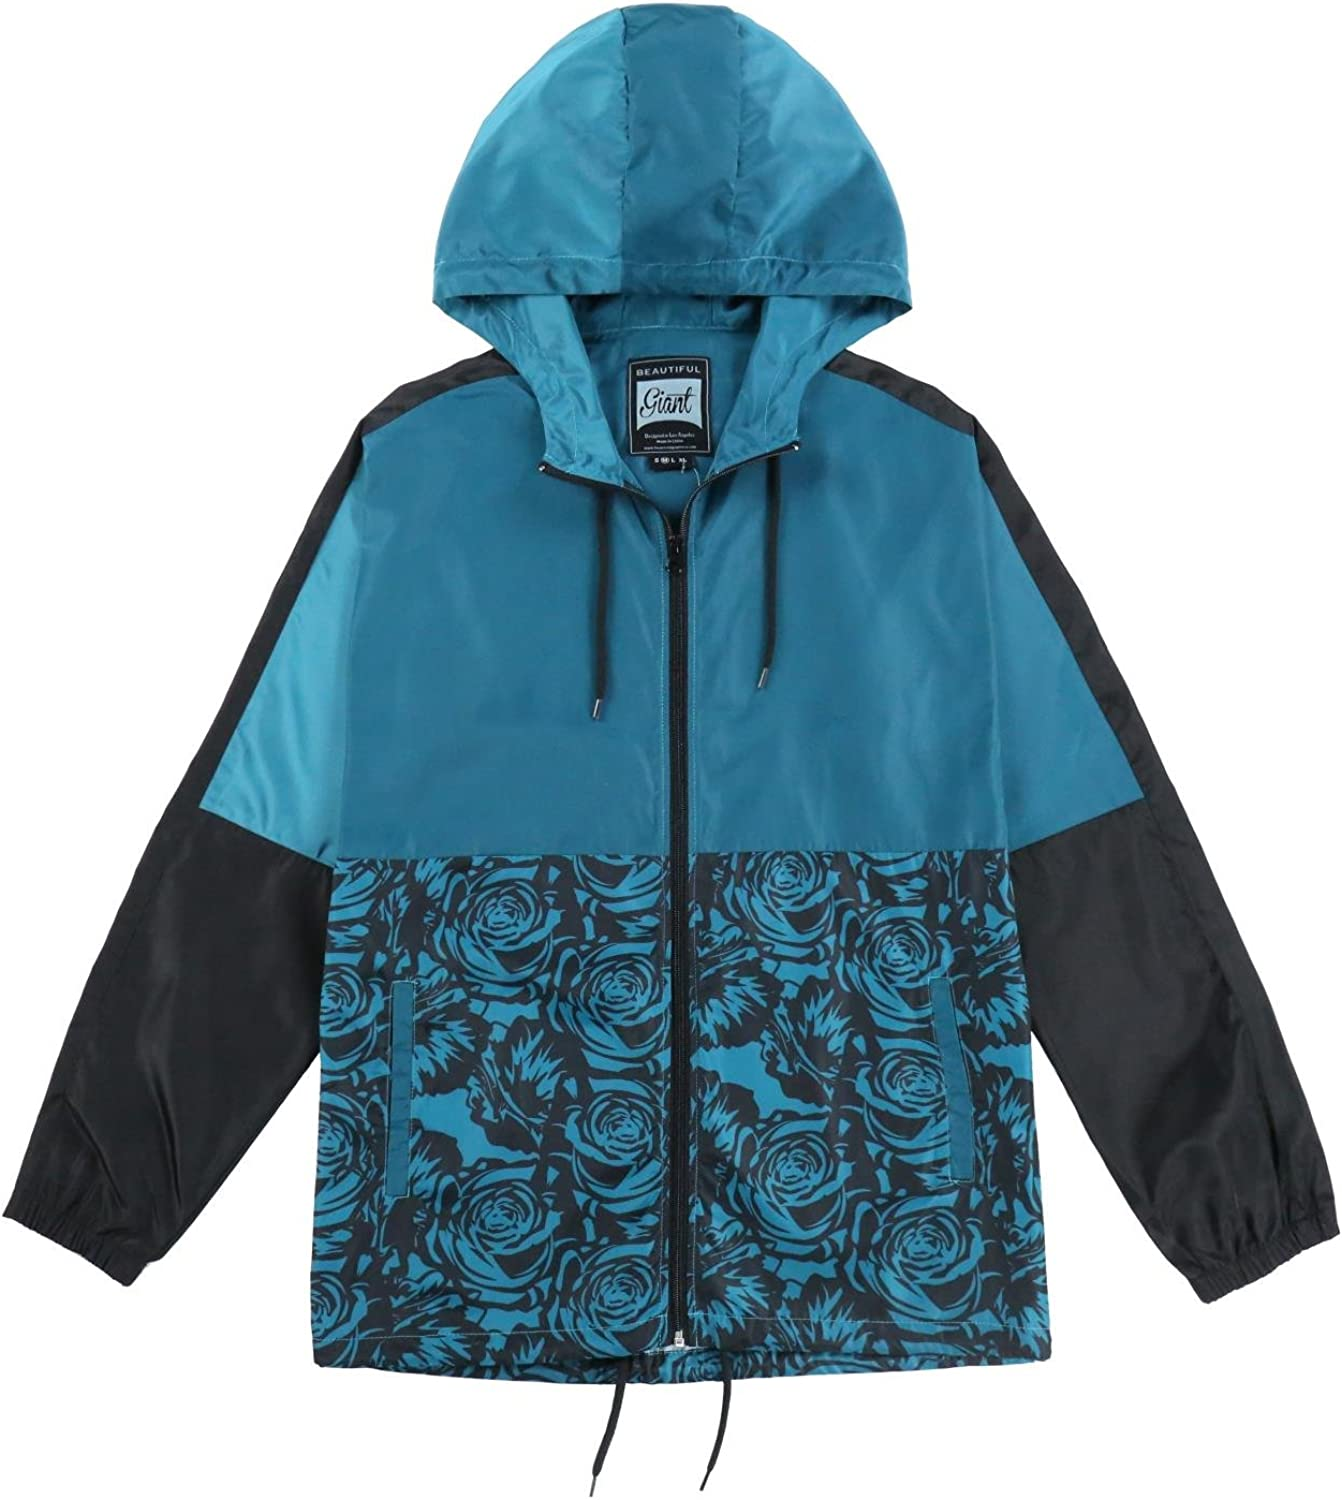 Men's Water Resistant Coat Soft long sleeve Performance Street Fashion Shell